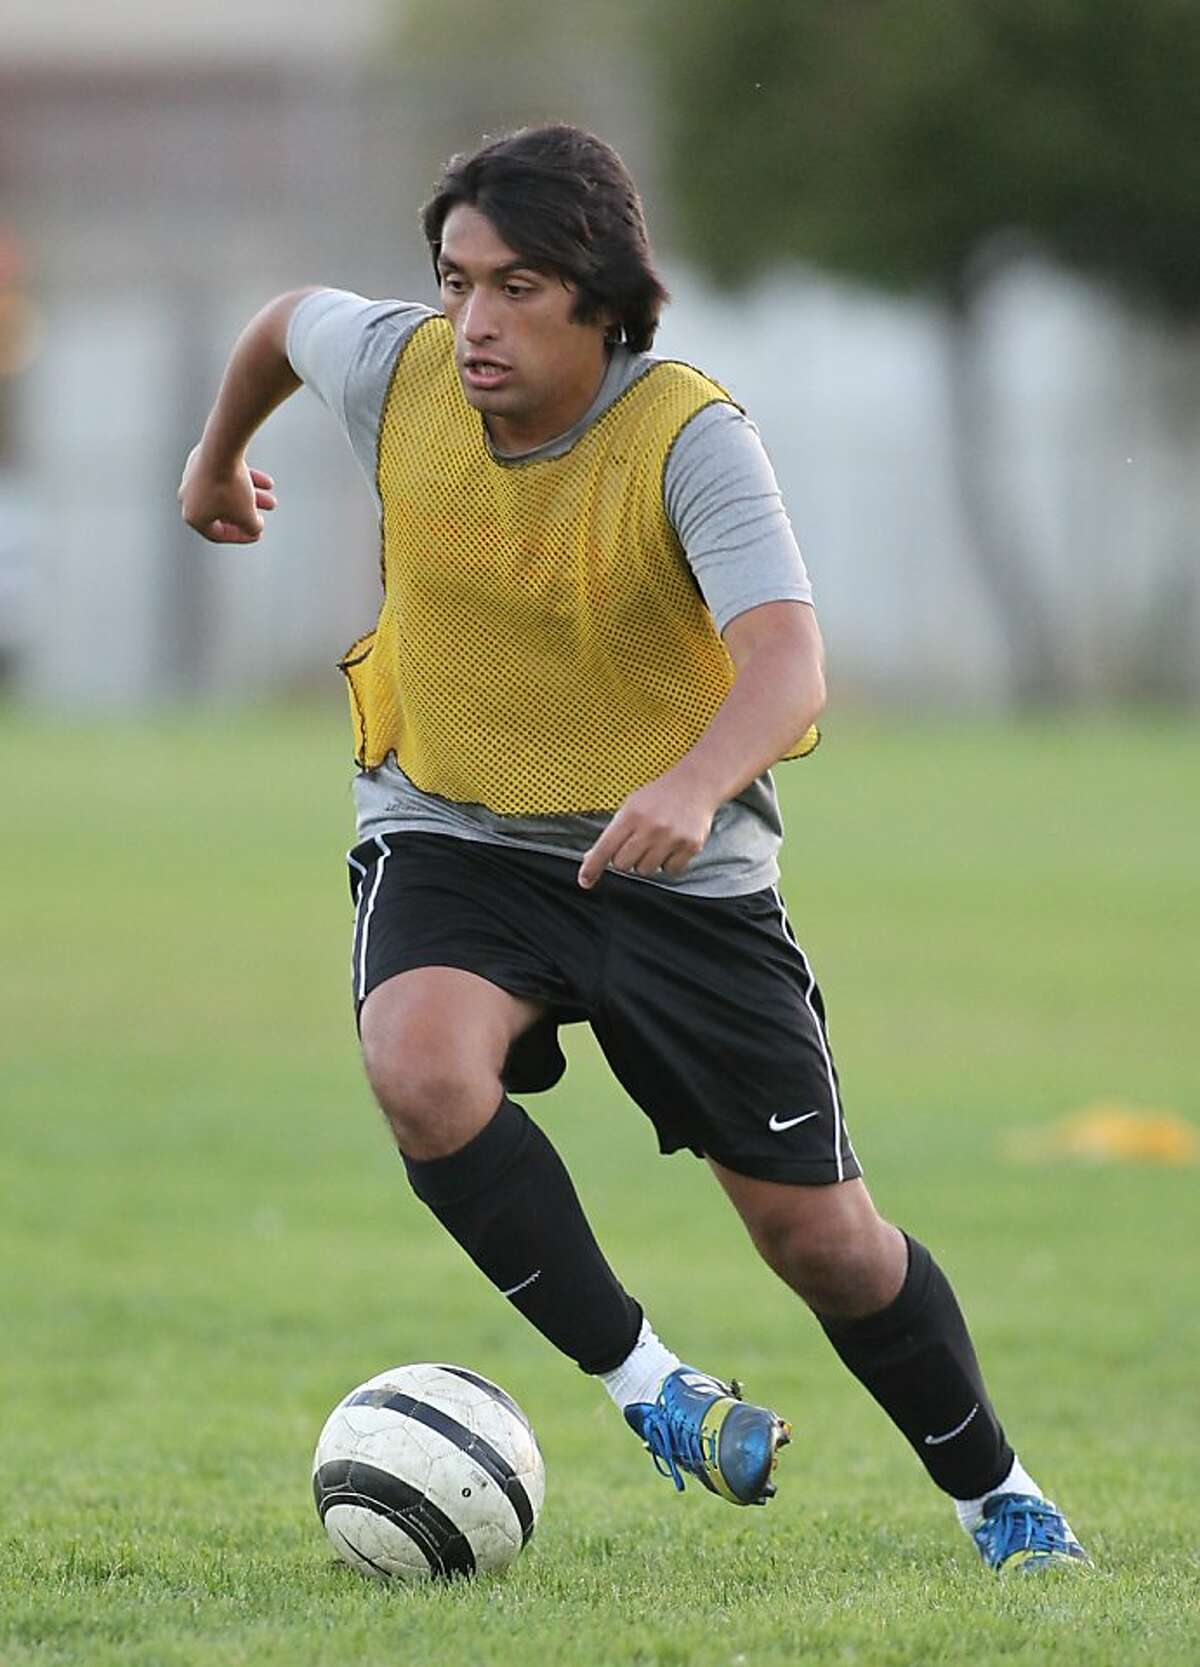 Daniel Argueta scrimages during practice at San Rafael High in San Rafael, Calif. on Tuesday, Oct. 15, 2013.